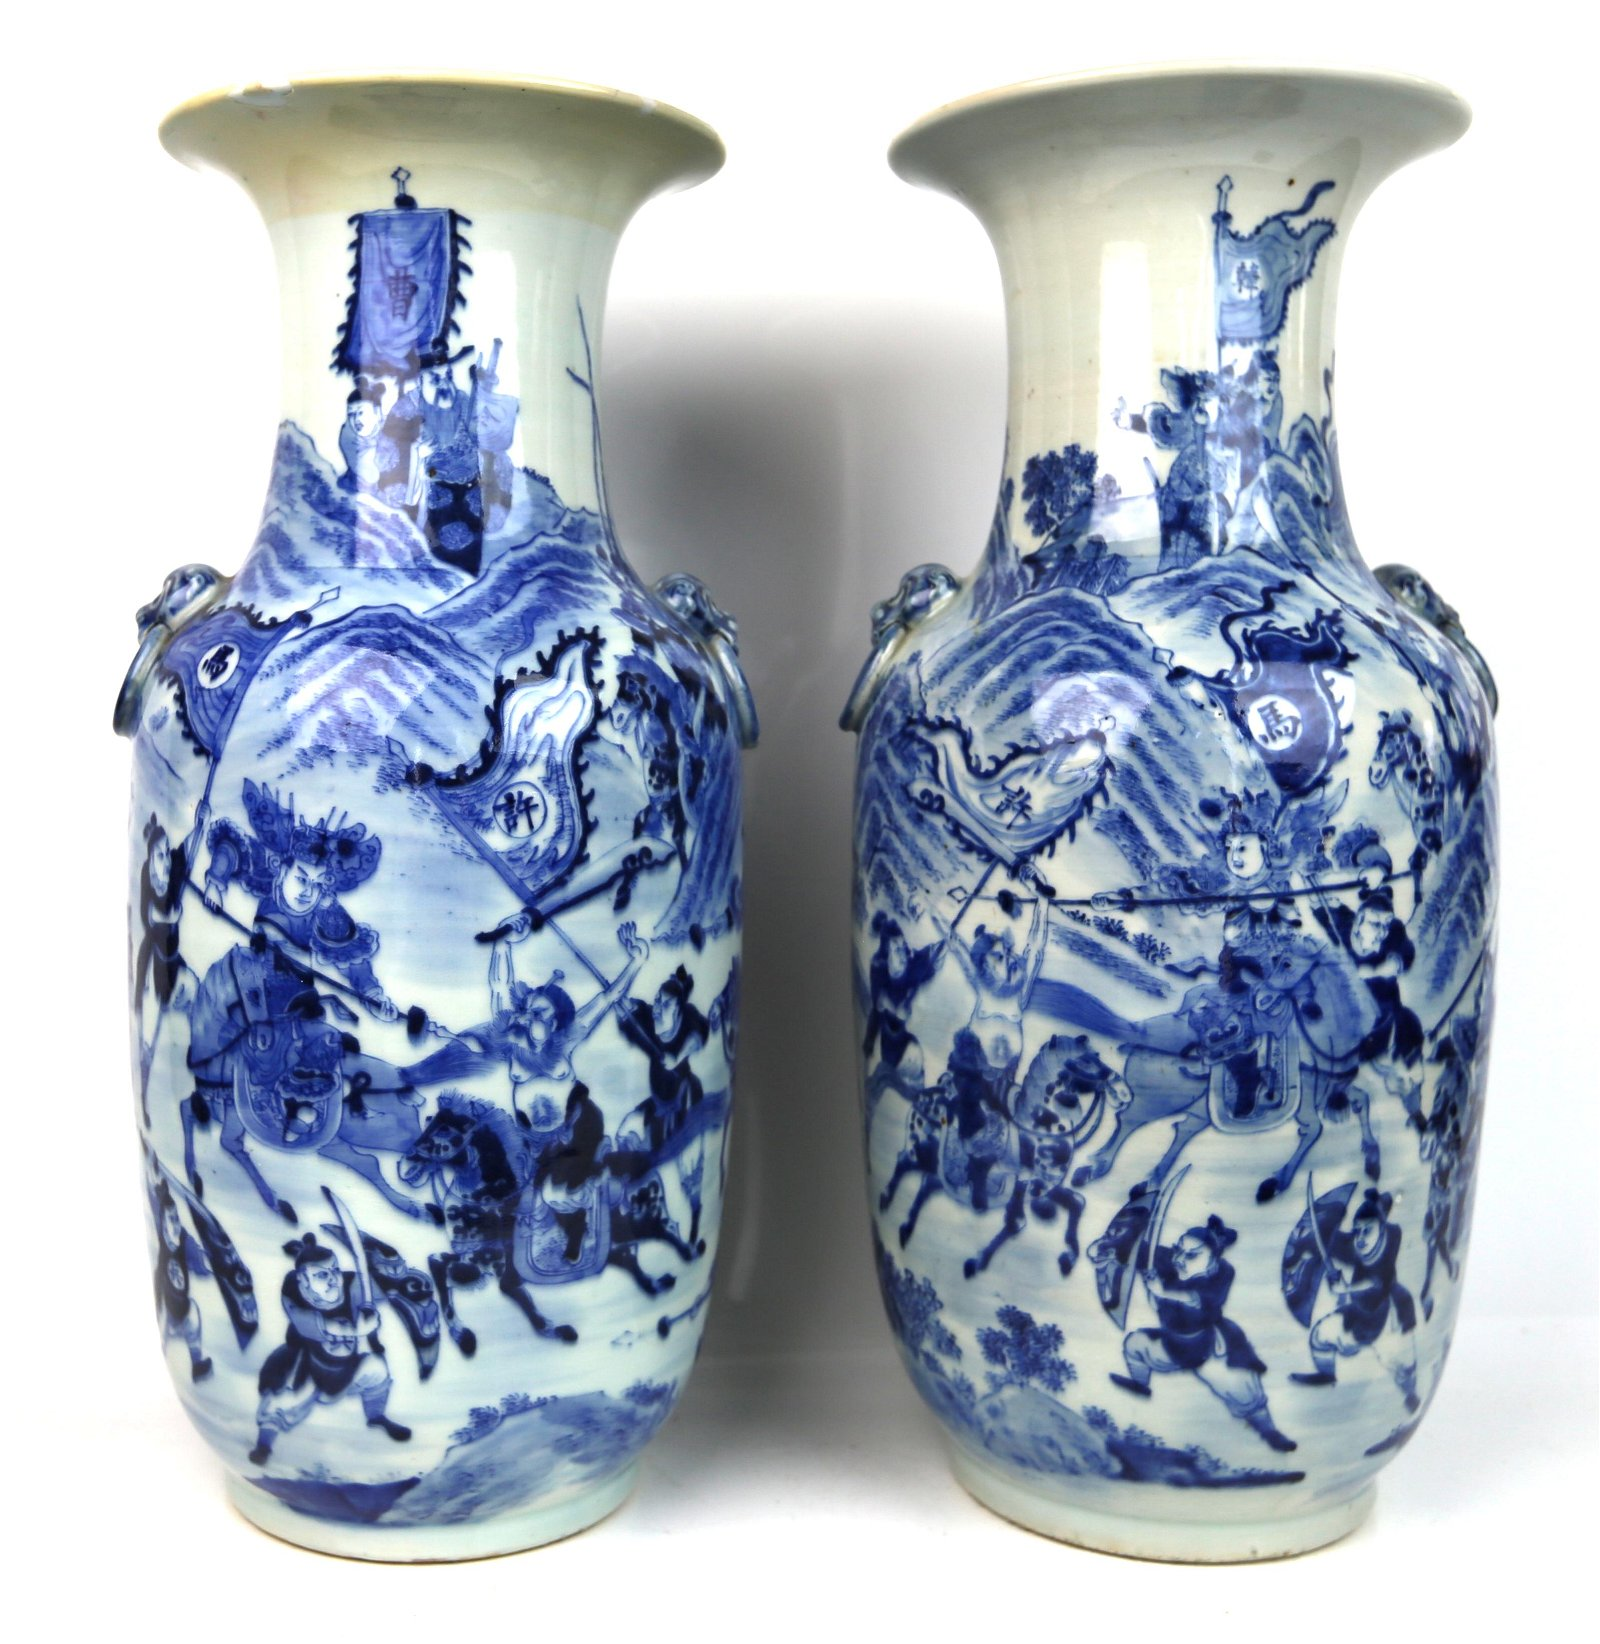 A Pair of Chinese Blue & White Vases Painted with Three